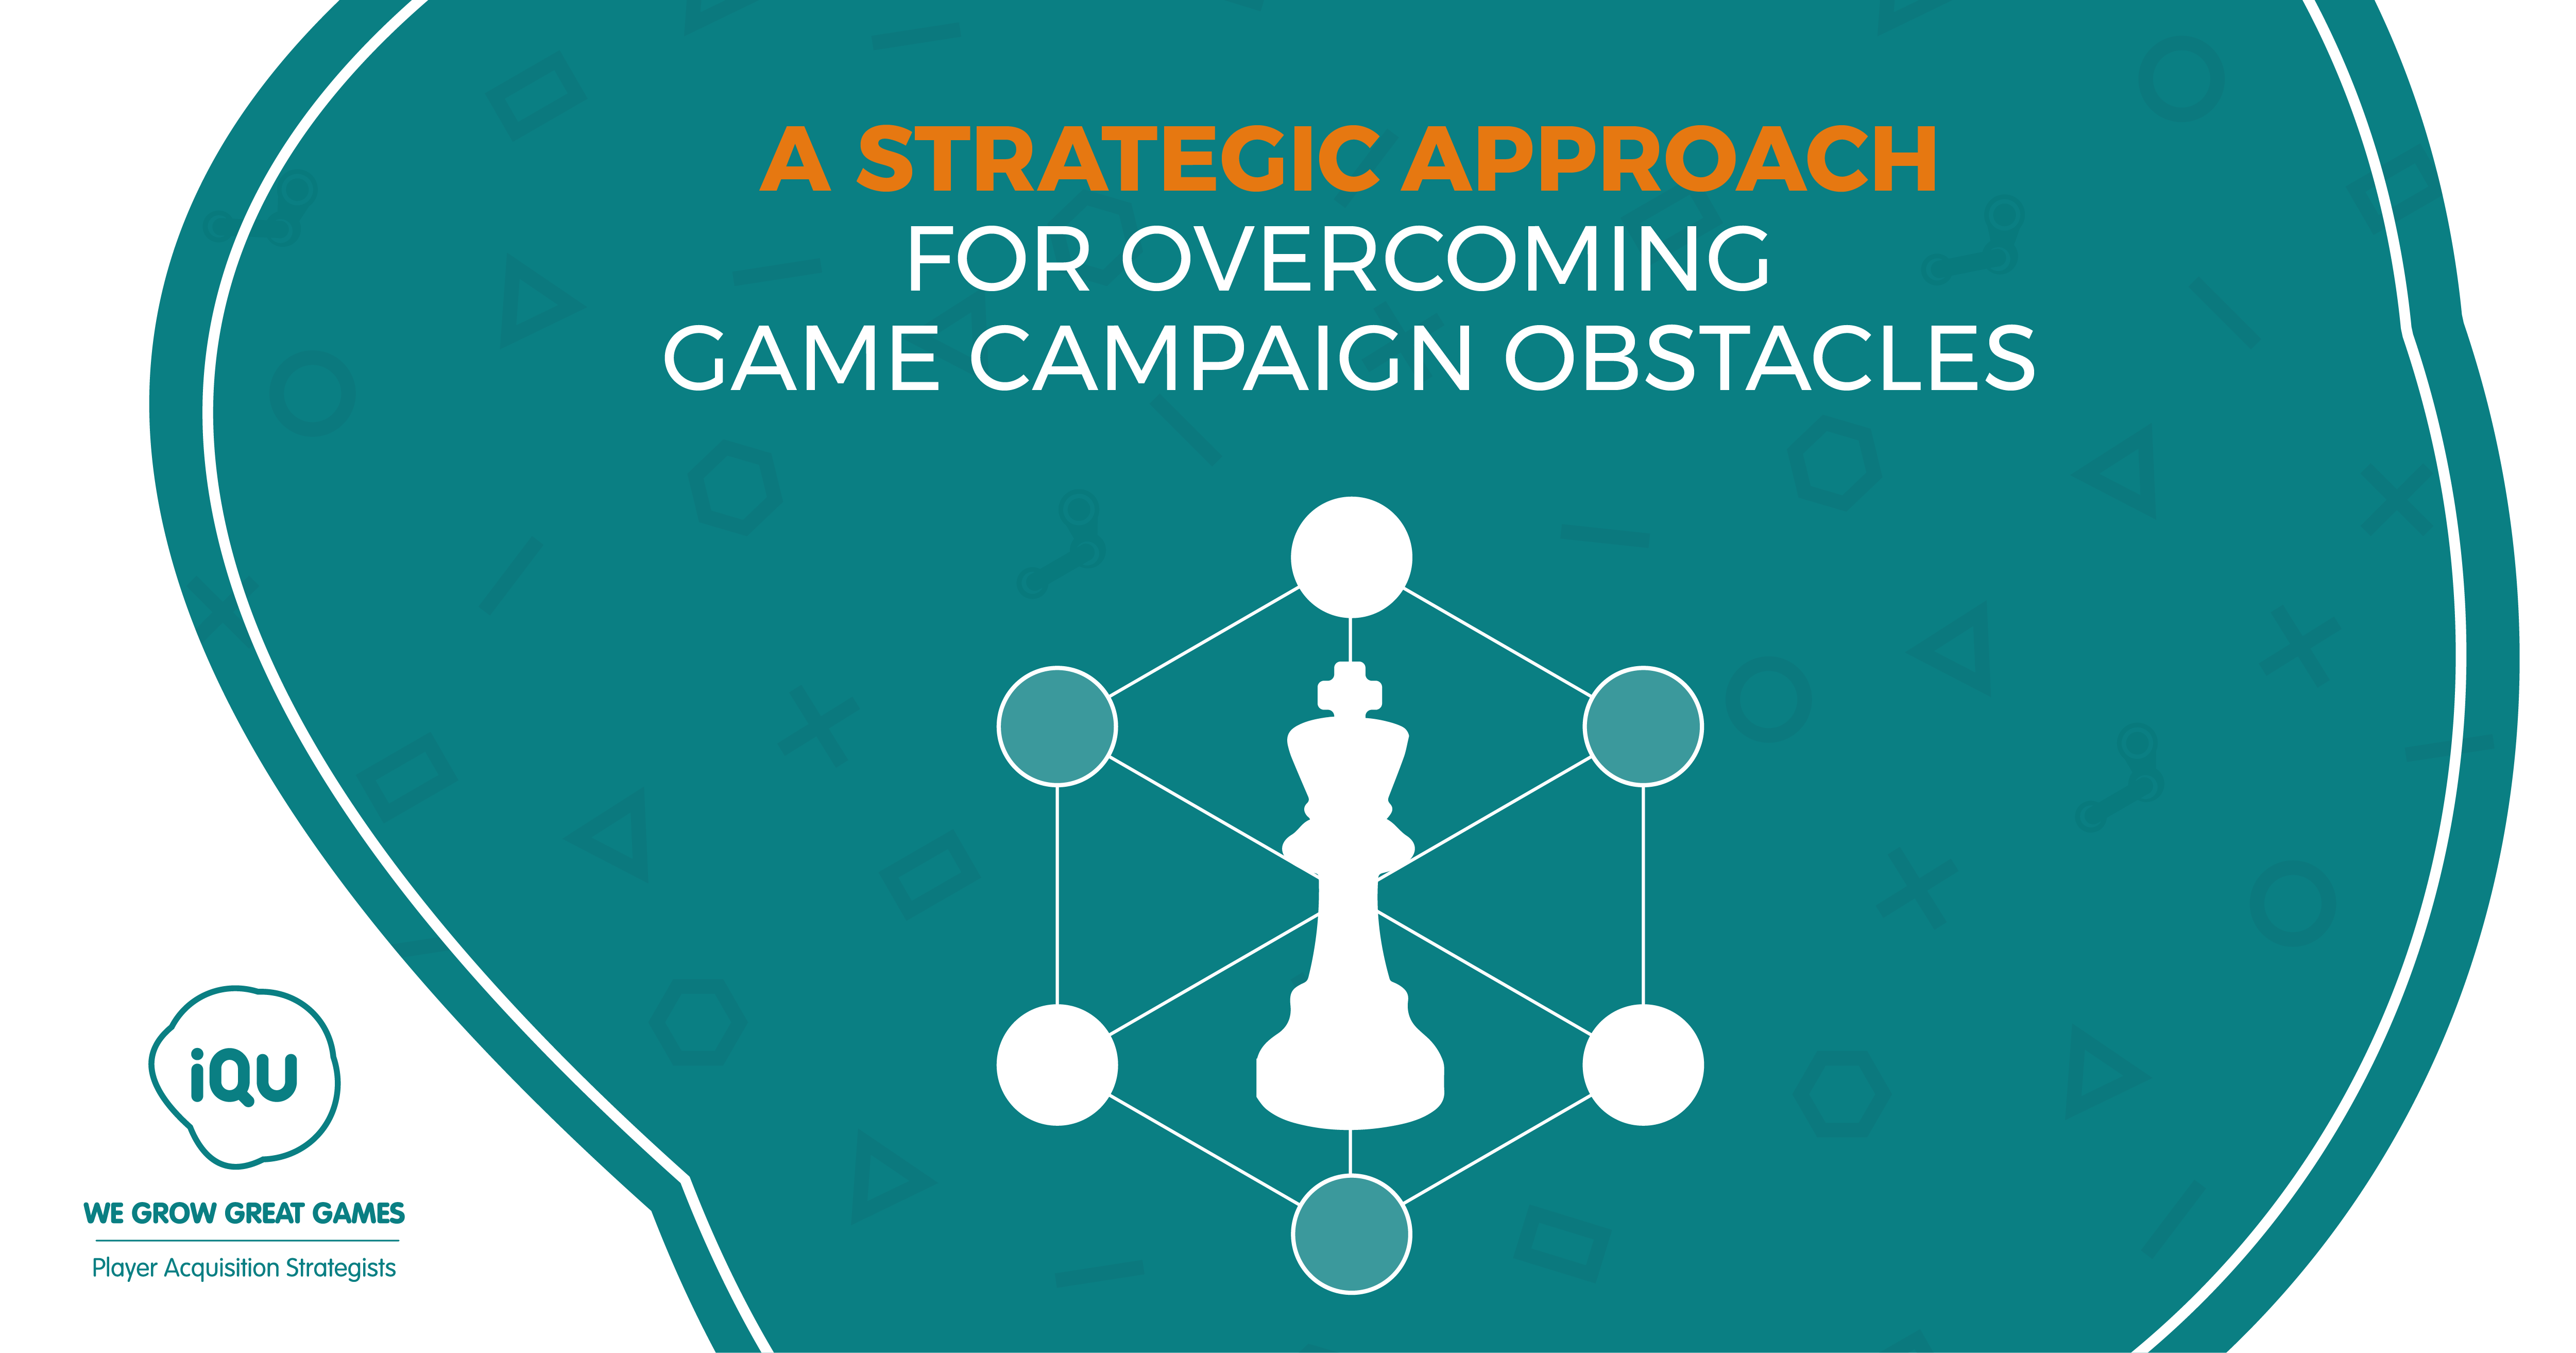 How introducing a holistic strategic approach helps solve many of the current game ad campaign issues